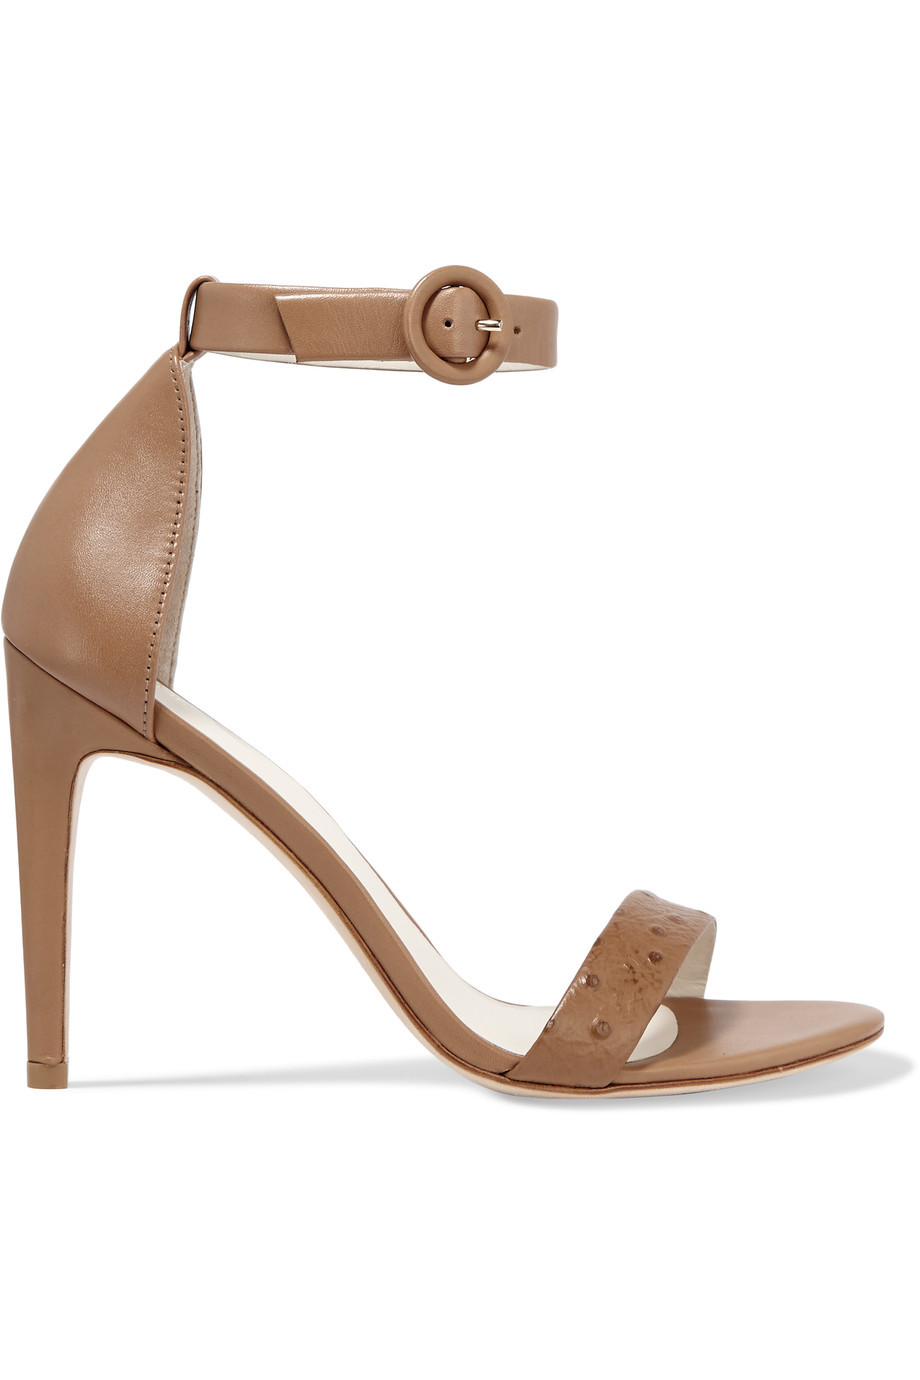 Rivington Ostrich Effect Leather Sandals Tan - predominant colour: tan; occasions: evening, occasion; material: leather; ankle detail: ankle strap; heel: stiletto; toe: open toe/peeptoe; style: standard; finish: plain; pattern: plain; heel height: very high; season: s/s 2016